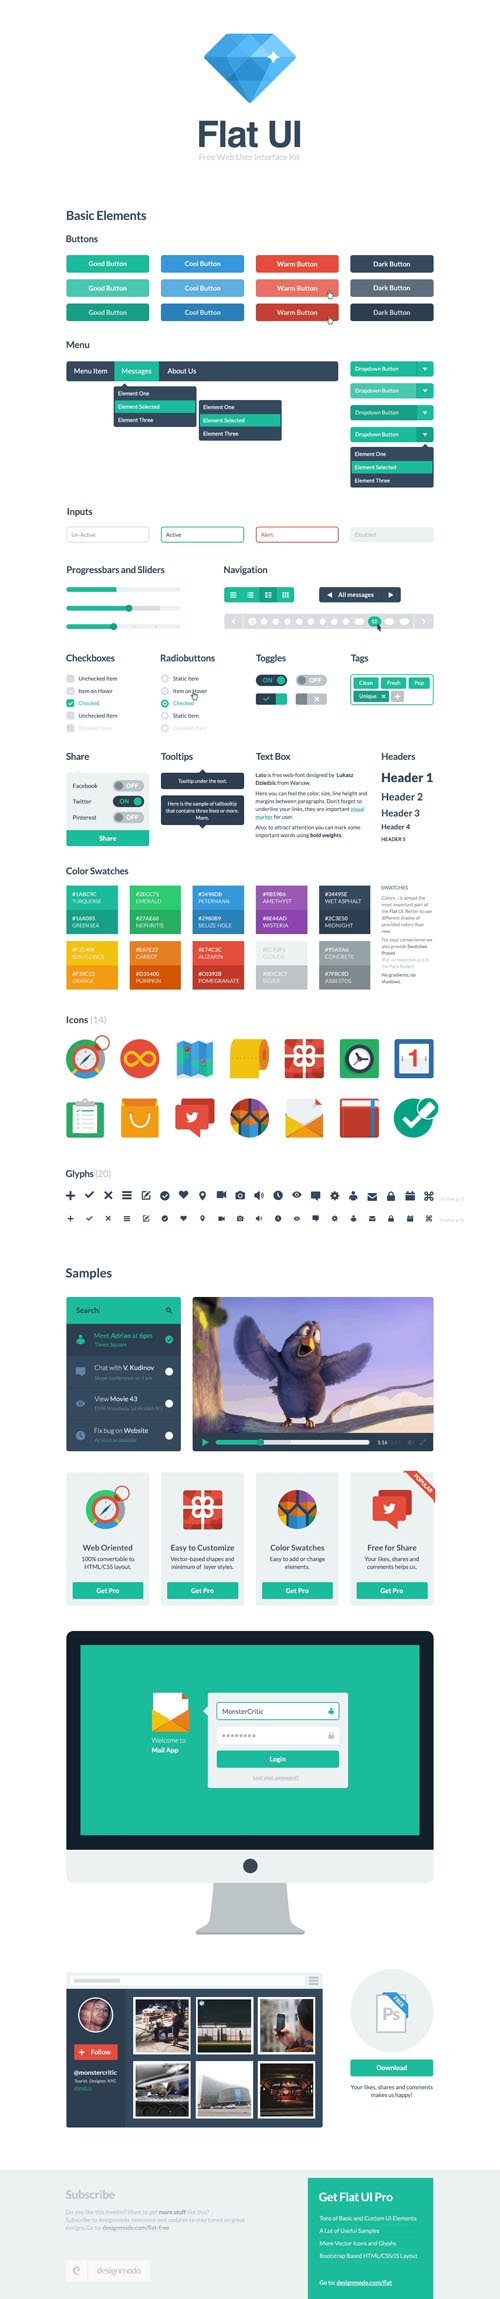 Flat UI – Framework and Bootstrap Theme Design [PSD/HTML]